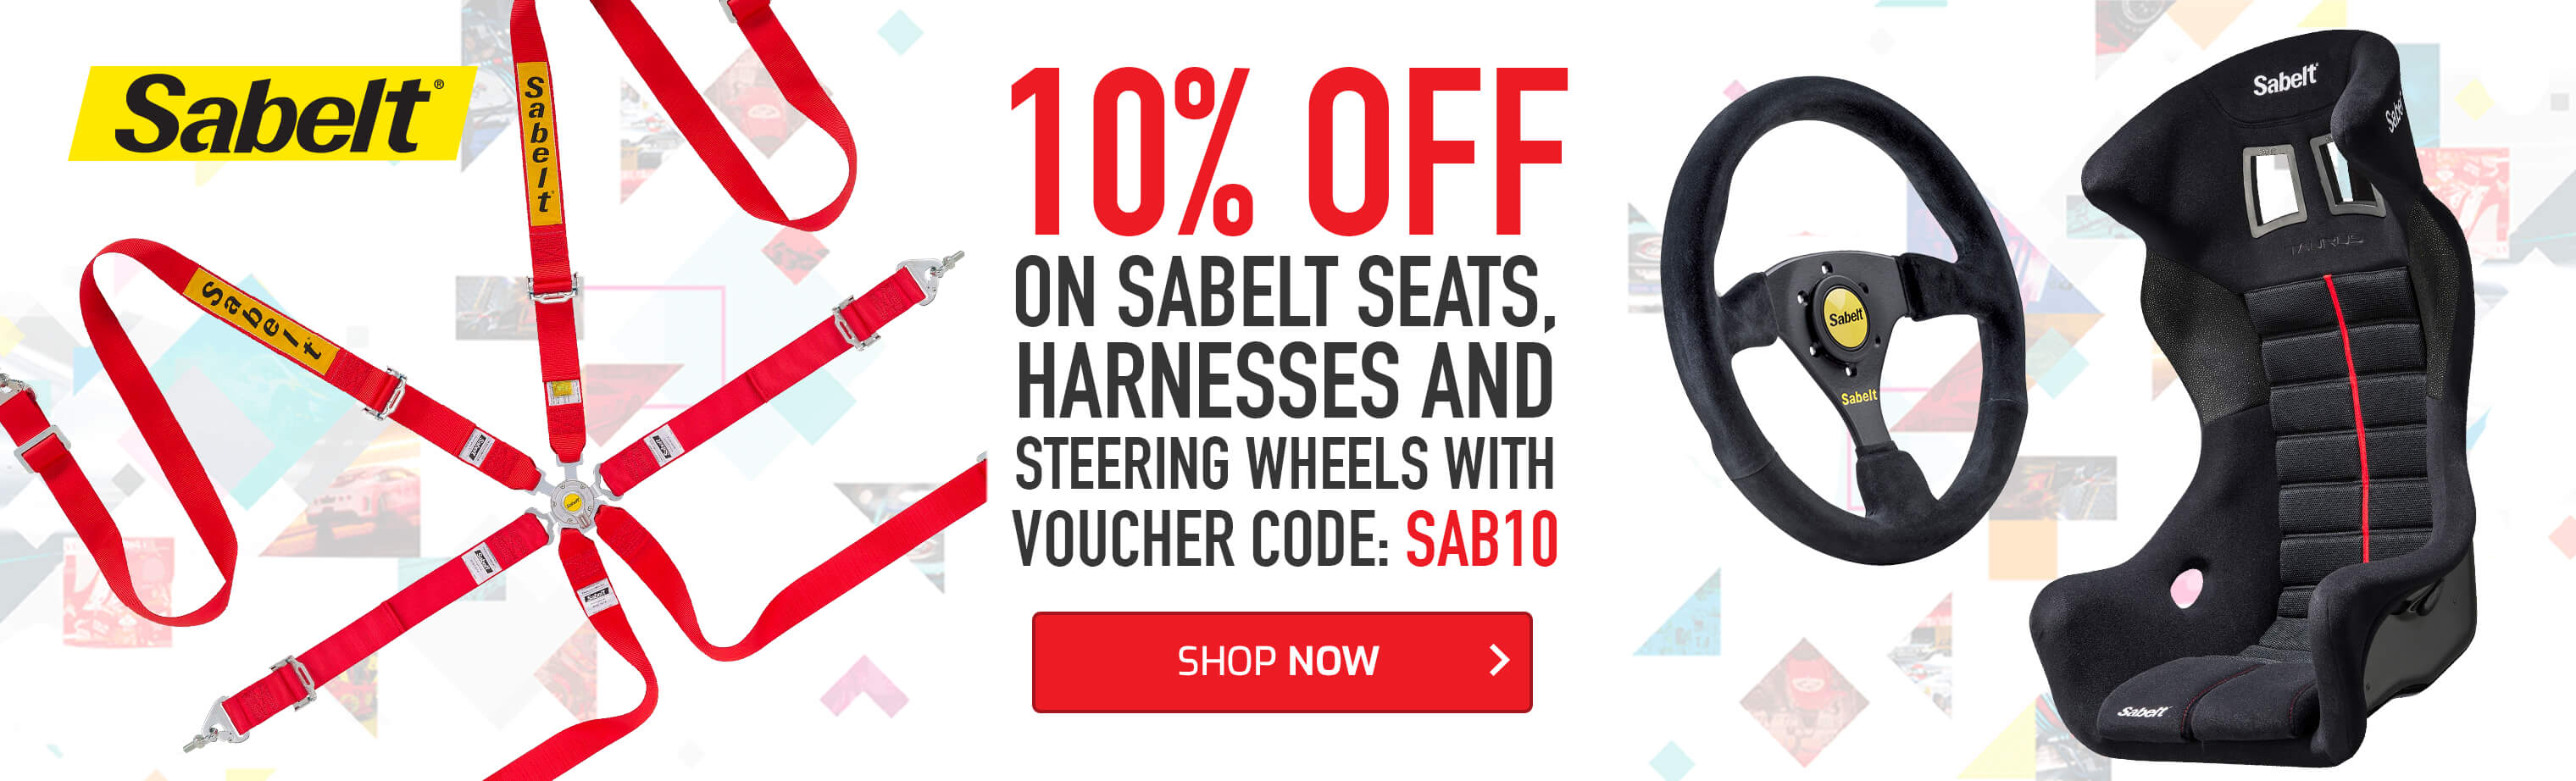 Save 10% on Sabelt seats, harnesses and steering wheels